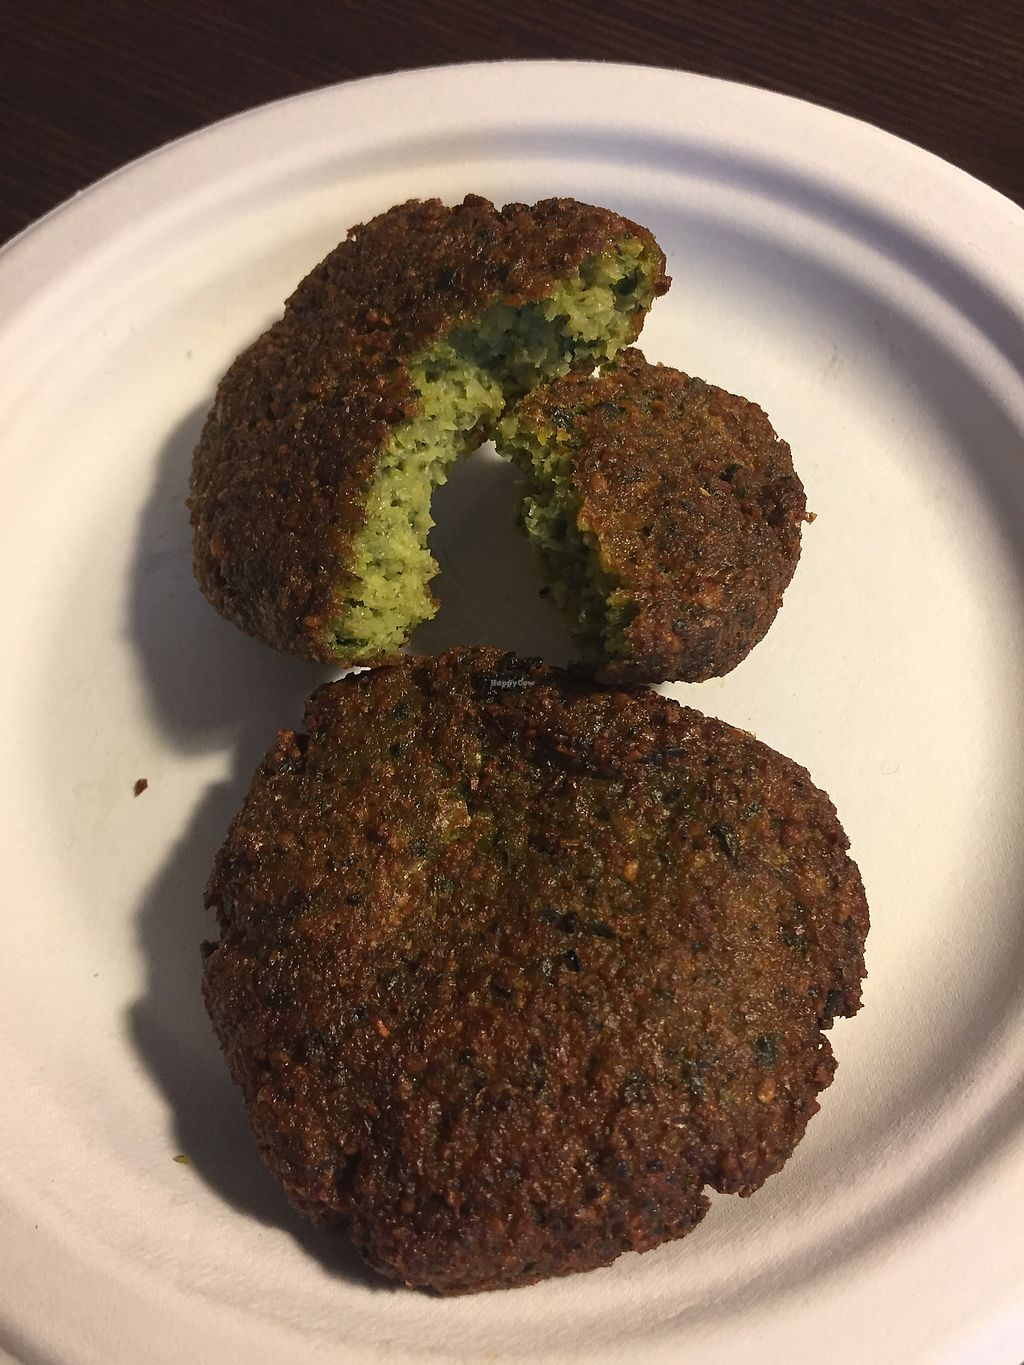 """Photo of Blend Cups Organic  by <a href=""""/members/profile/TracyV600"""">TracyV600</a> <br/>Best falafel EVER! Moist and flavorful. Highly recommend <br/> September 20, 2017  - <a href='/contact/abuse/image/96656/306636'>Report</a>"""